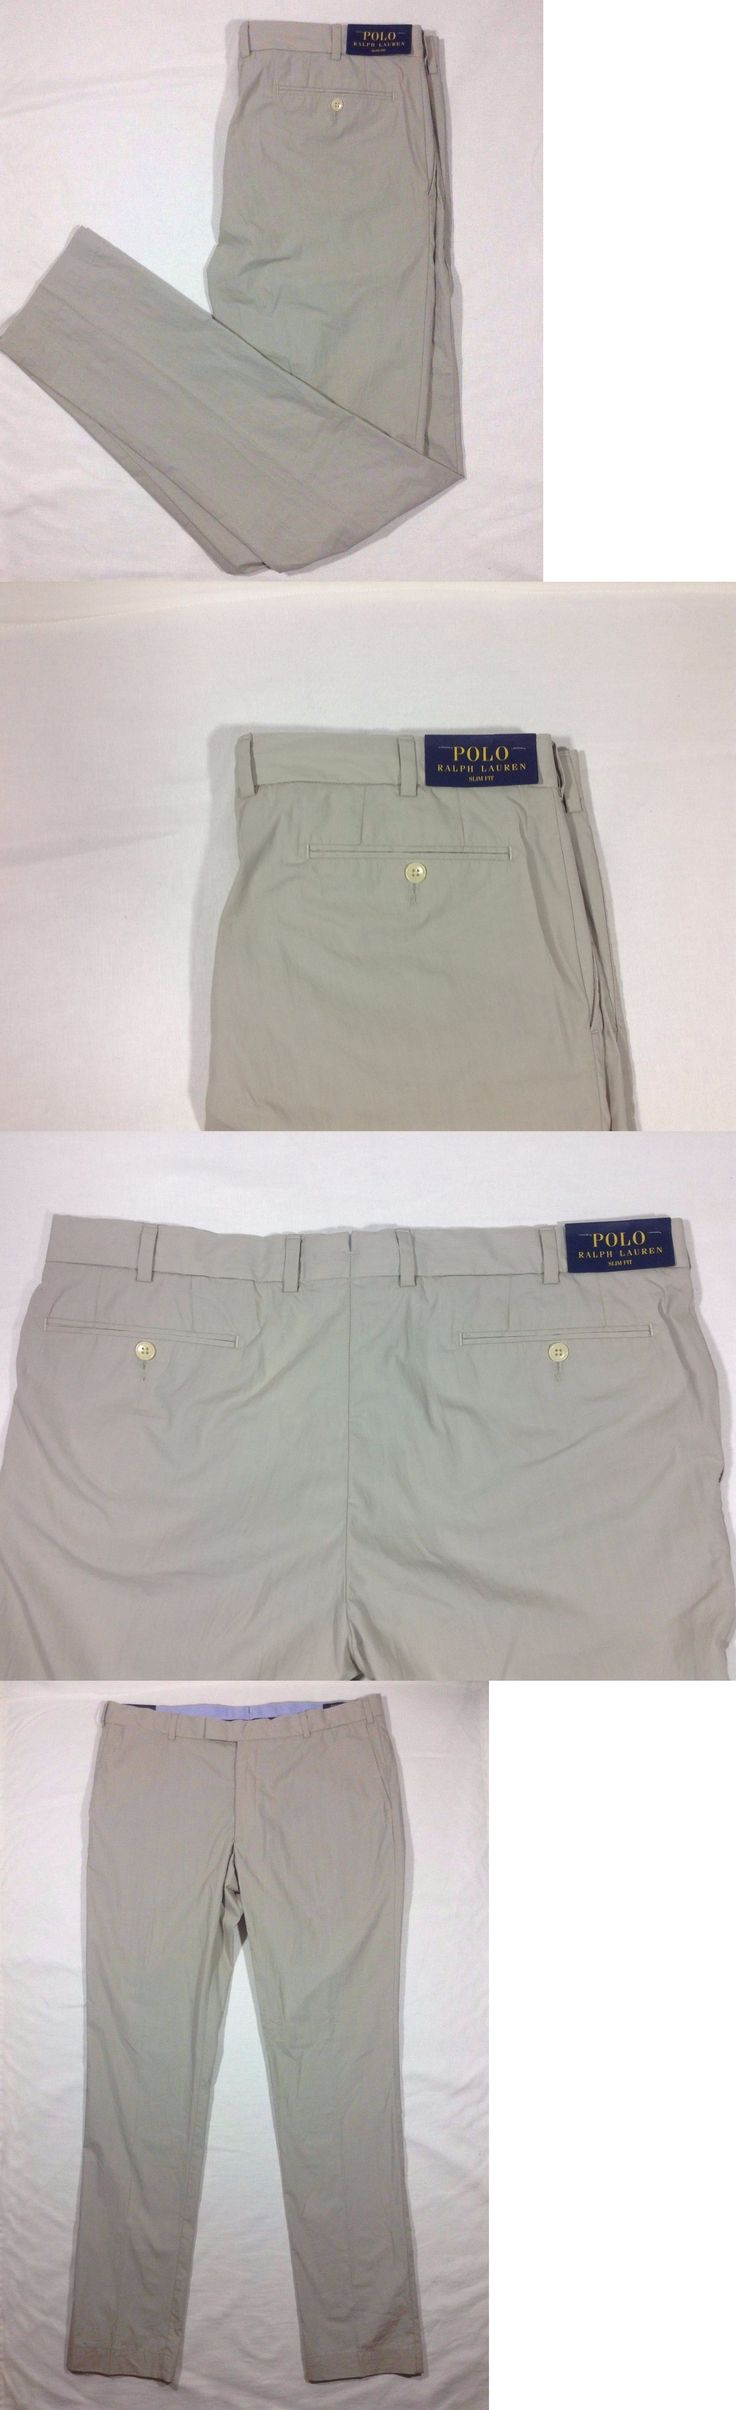 Pants 57989: Polo Ralph Lauren Slim Fit Chino Khaki Flat Front Pants Size 36 X 34 Big Tall -> BUY IT NOW ONLY: $44.99 on eBay!